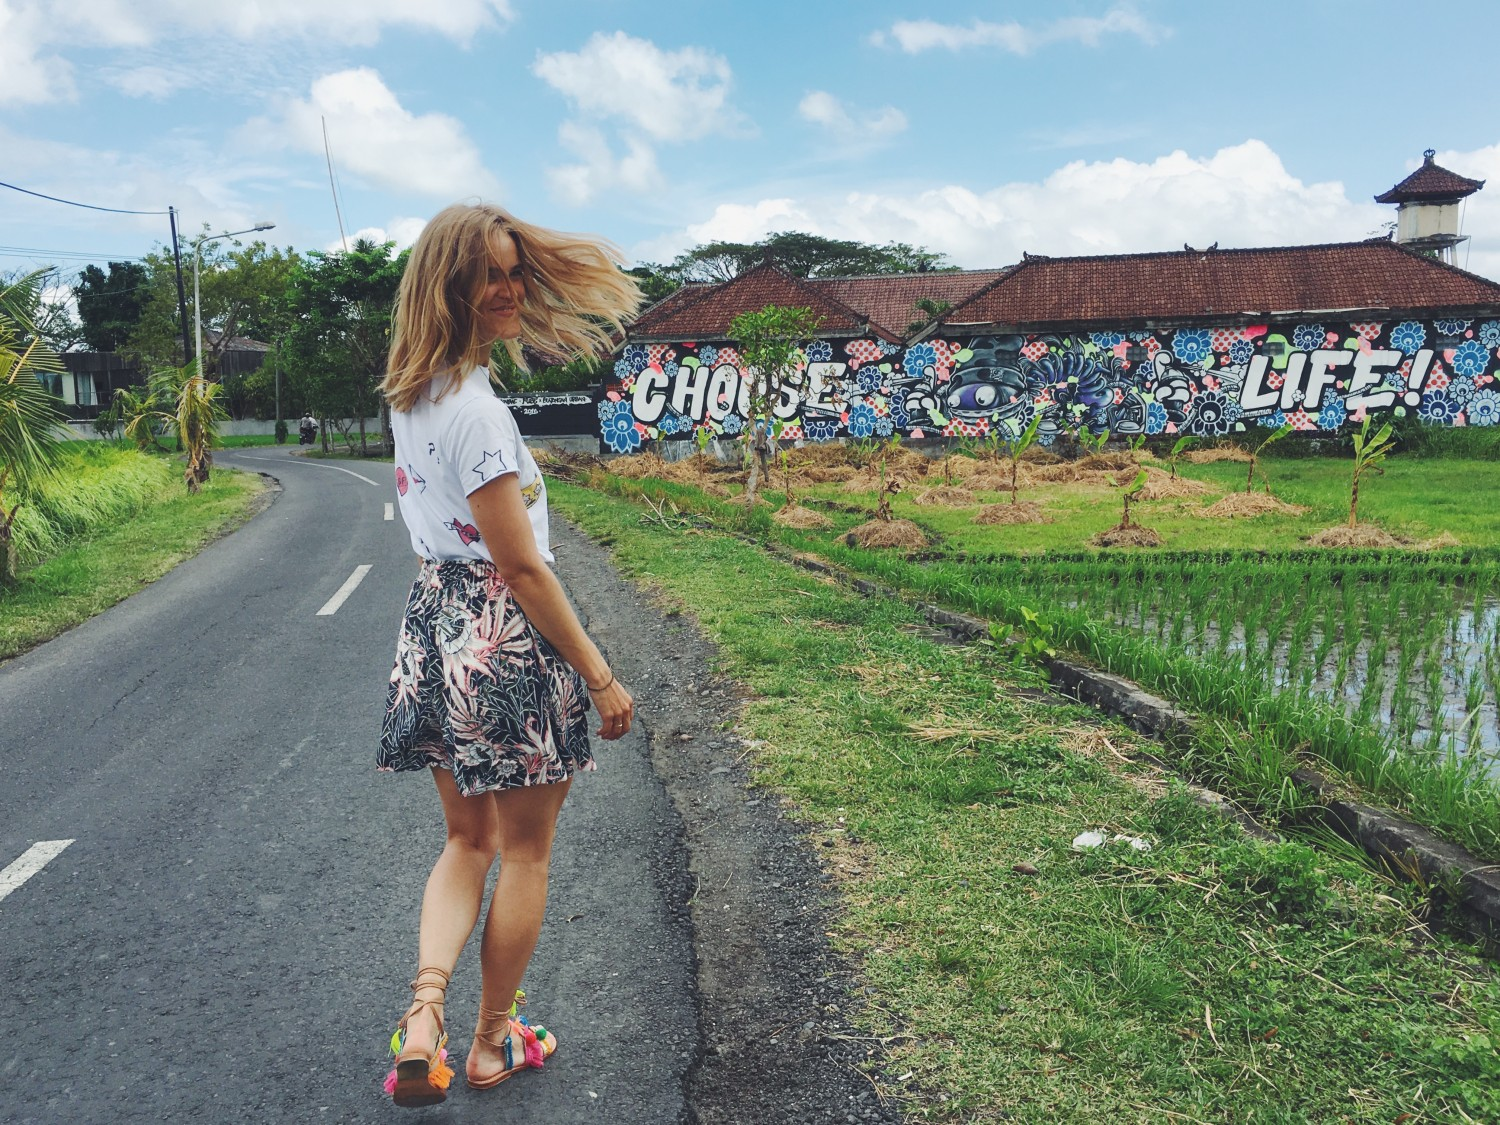 Rockpaperdresses, cathrine widunok wichmand, Bali Guide, Gili Air